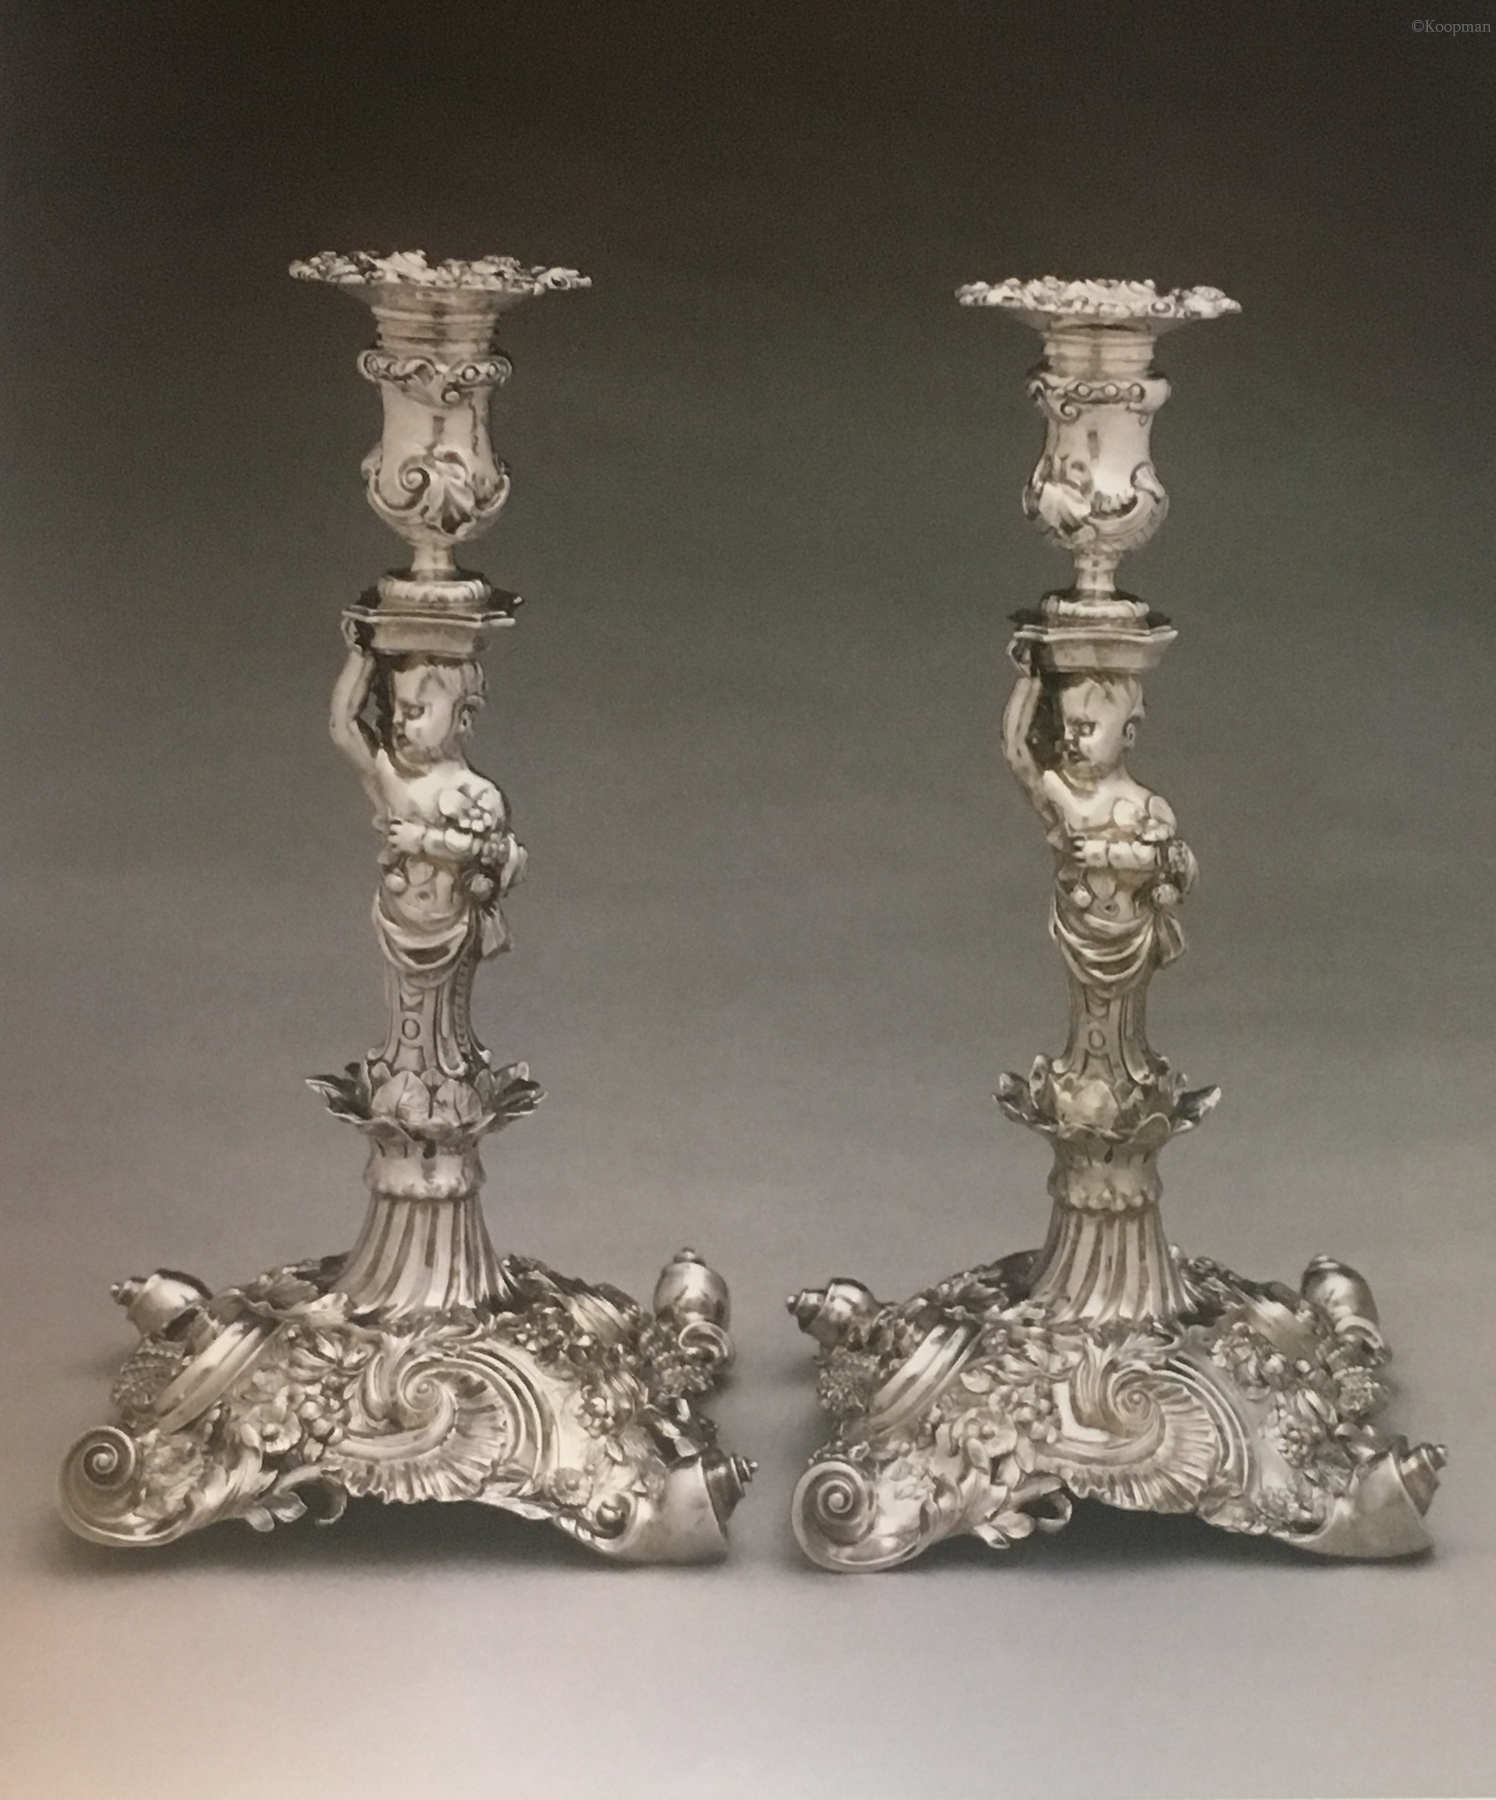 A HIGHLY IMPORTANT PAIR OF GEORGE II SILVER CANDLESTICKS